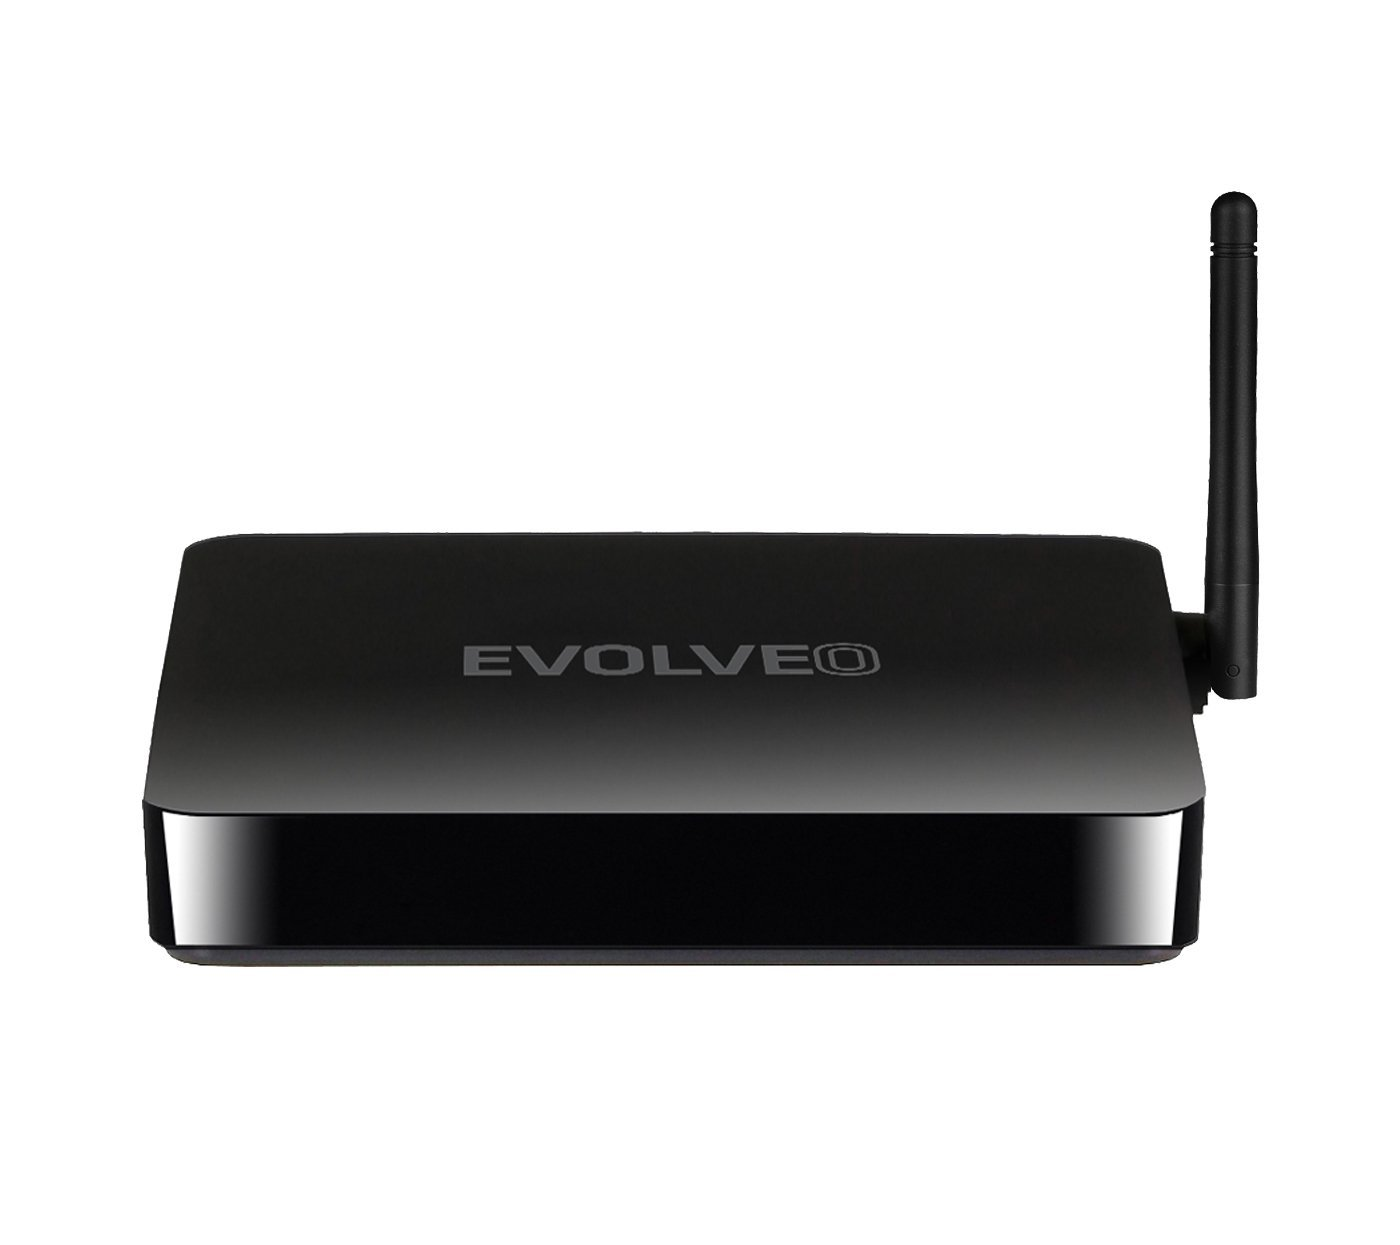 EVOLVEO Android Box H8, nyolcmagos multimédia center]